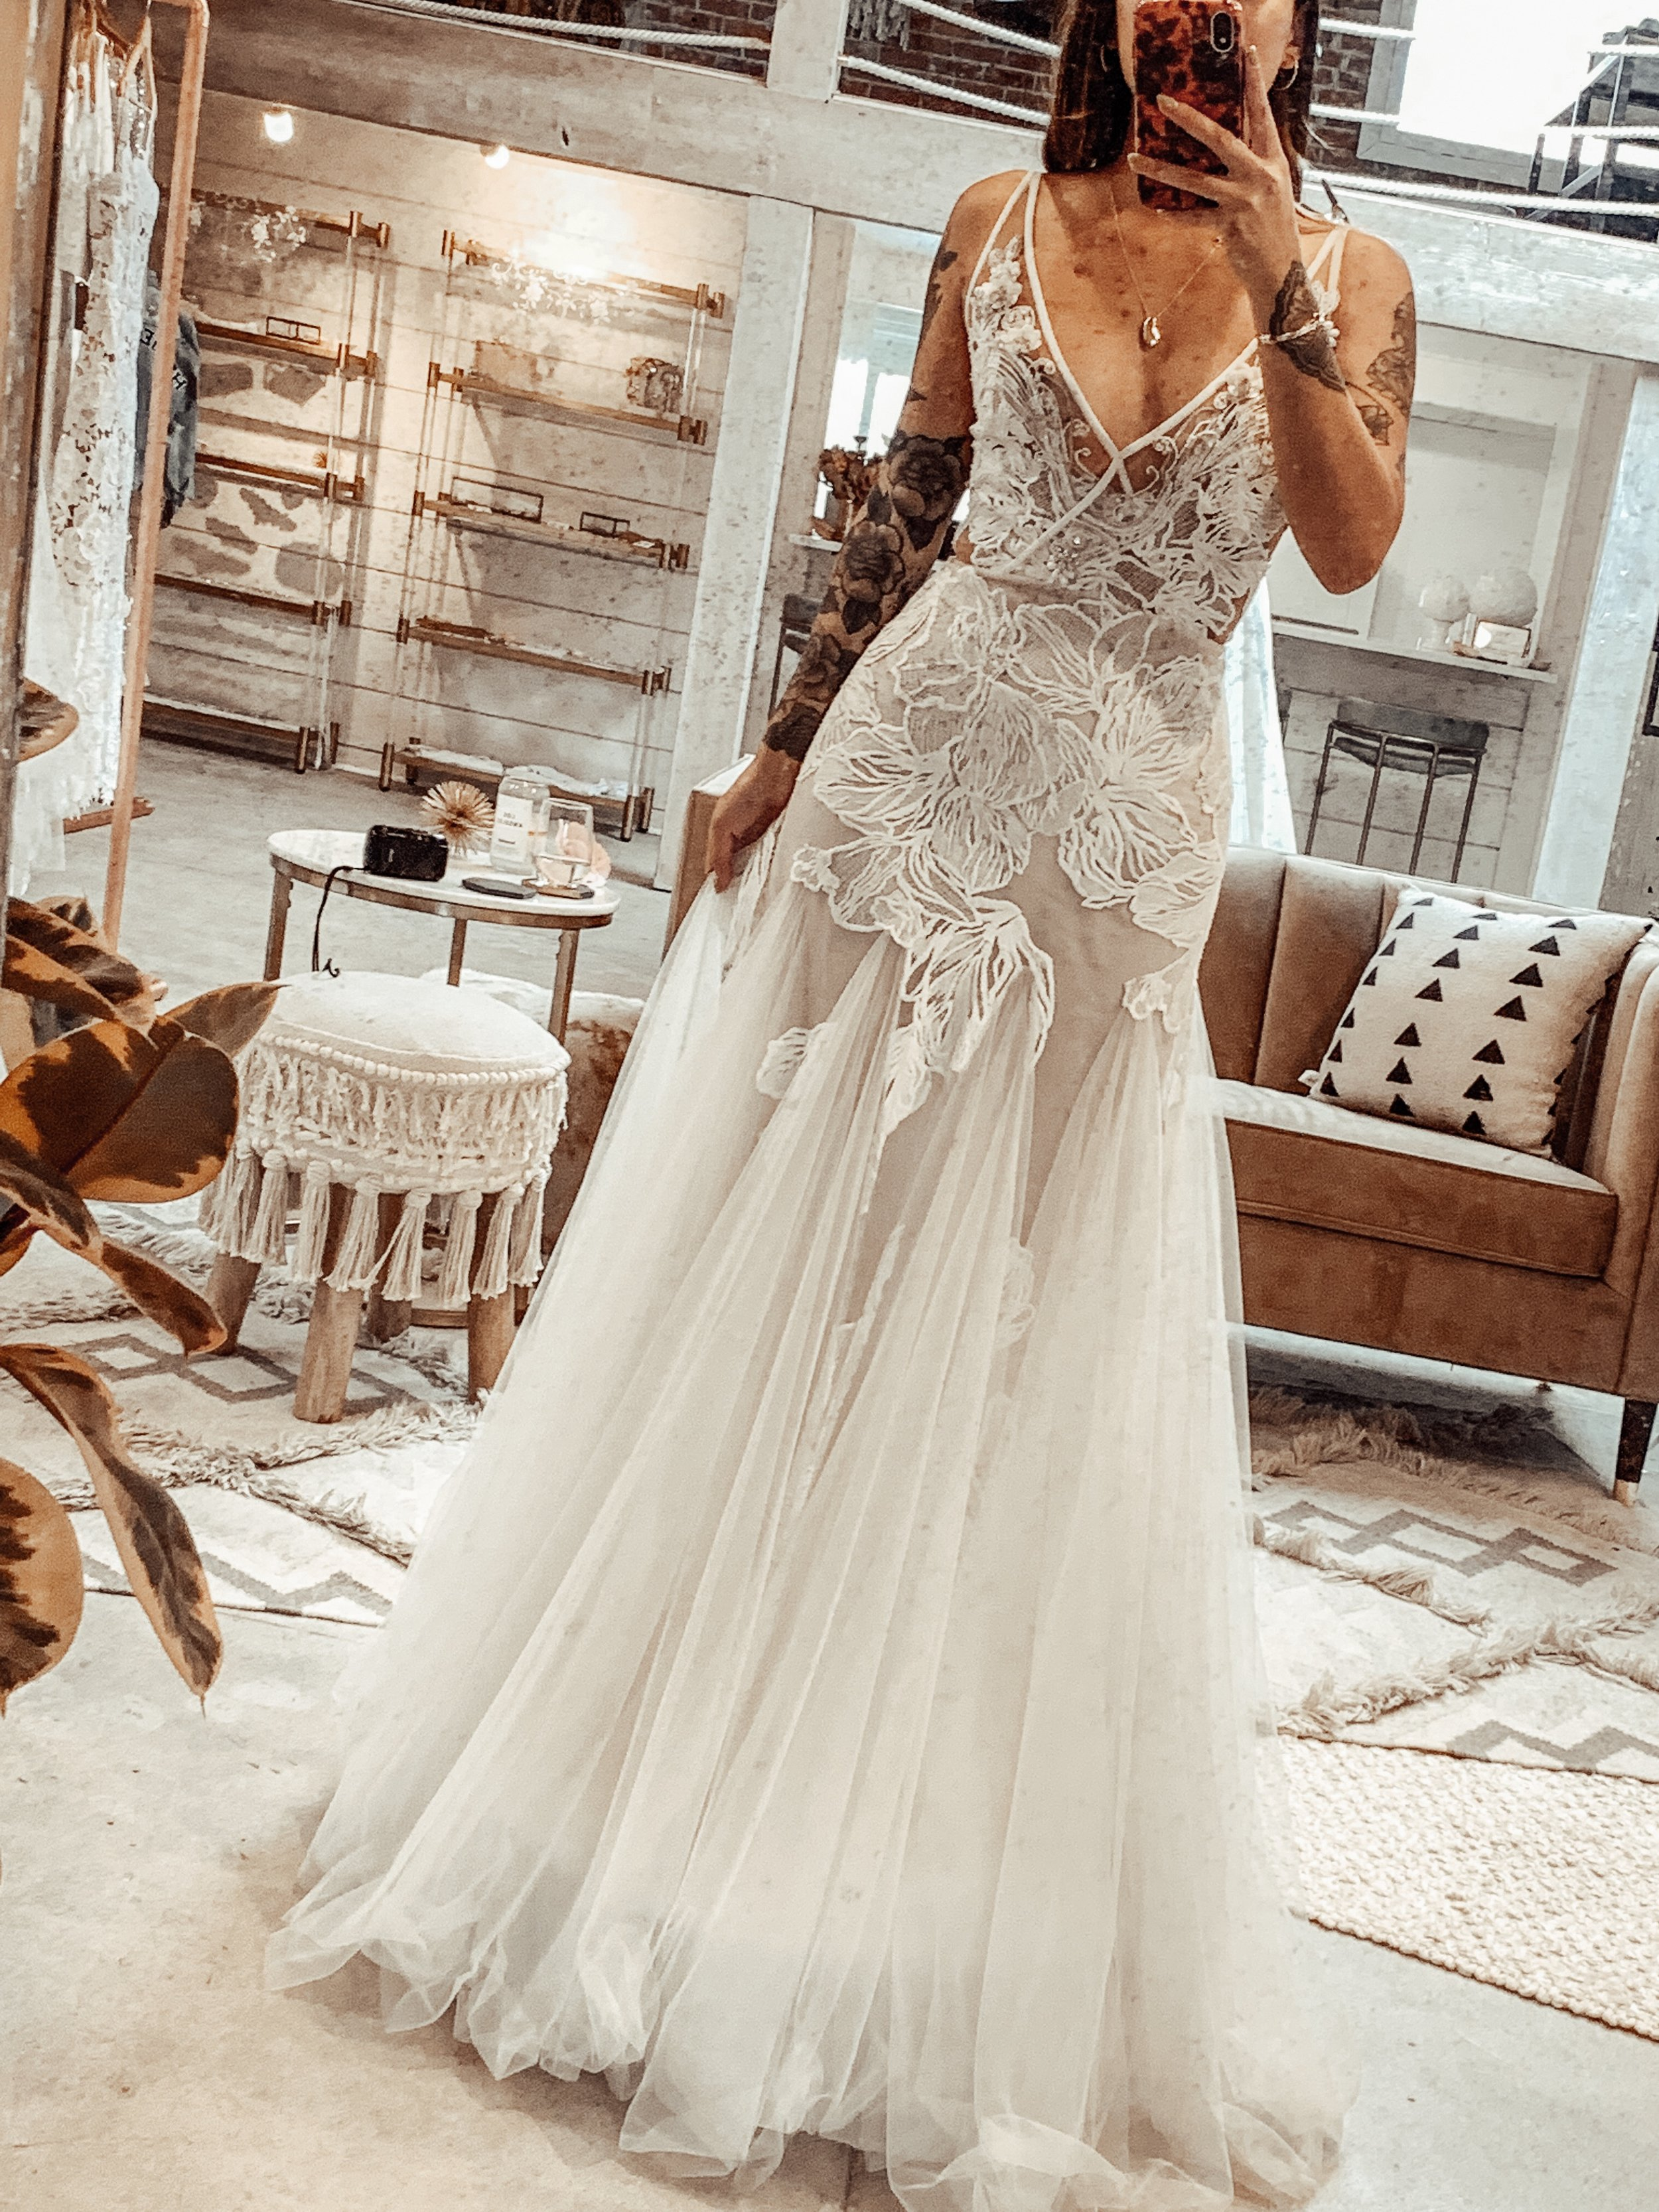 THE FLORAL MASTERPIECEThis beautiful dress was all covered by big floral lace pieces with a mermaid style skirt. It was so lightweight and comfortable to move around in. -